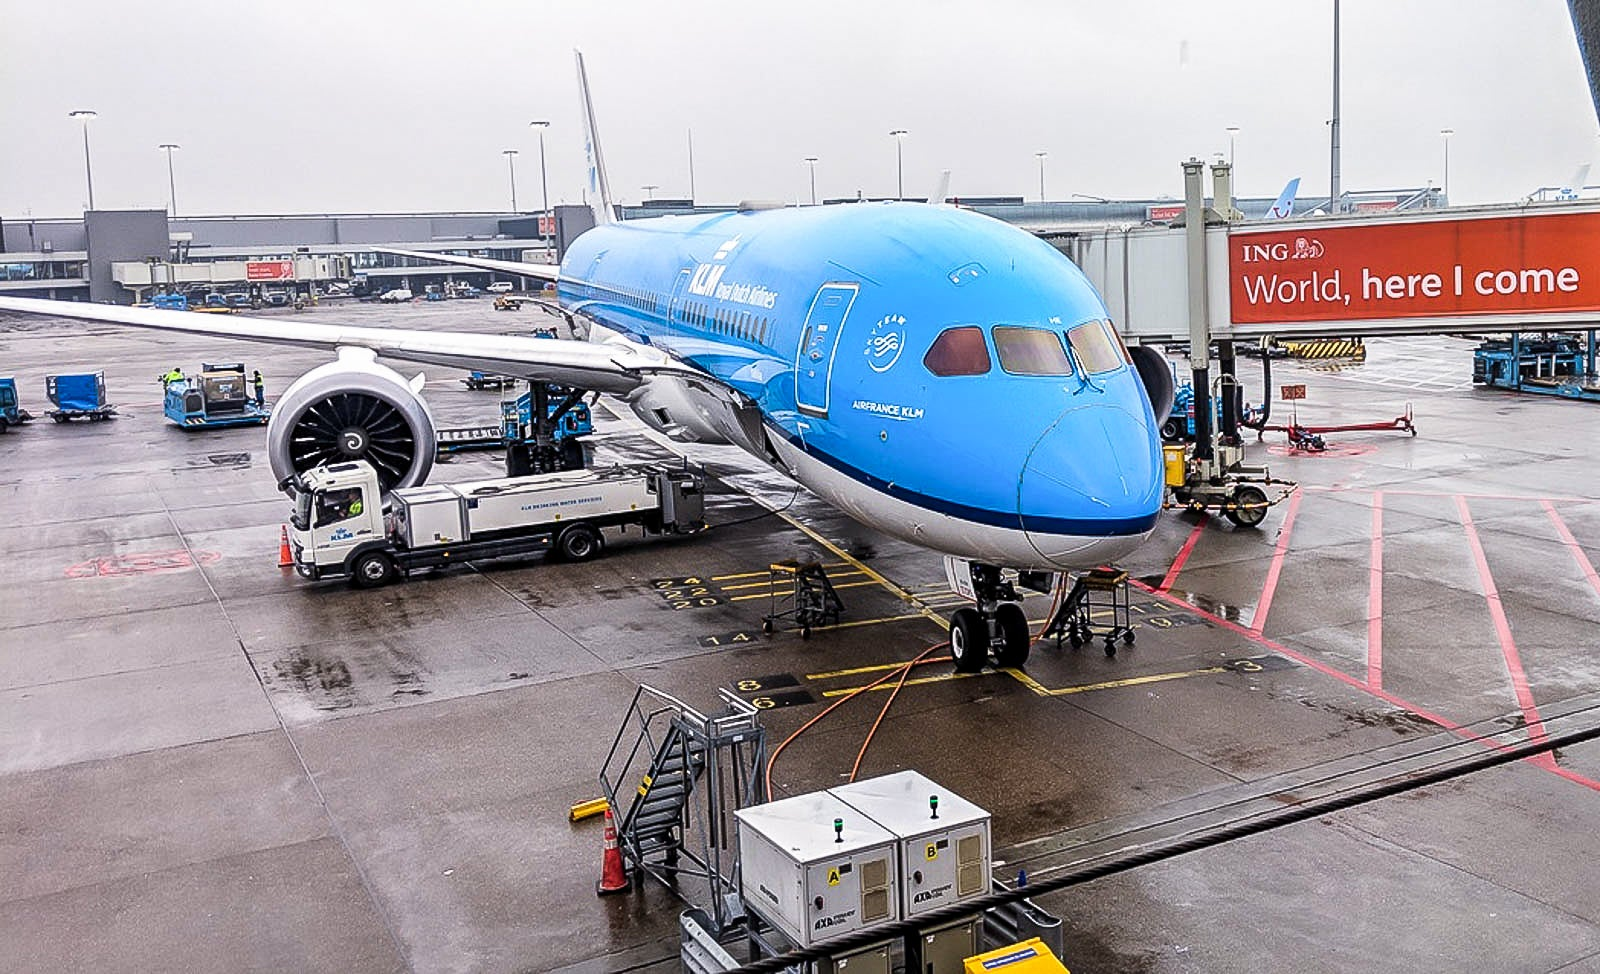 KLM to continue operating long-haul flights after reaching crew testing deal